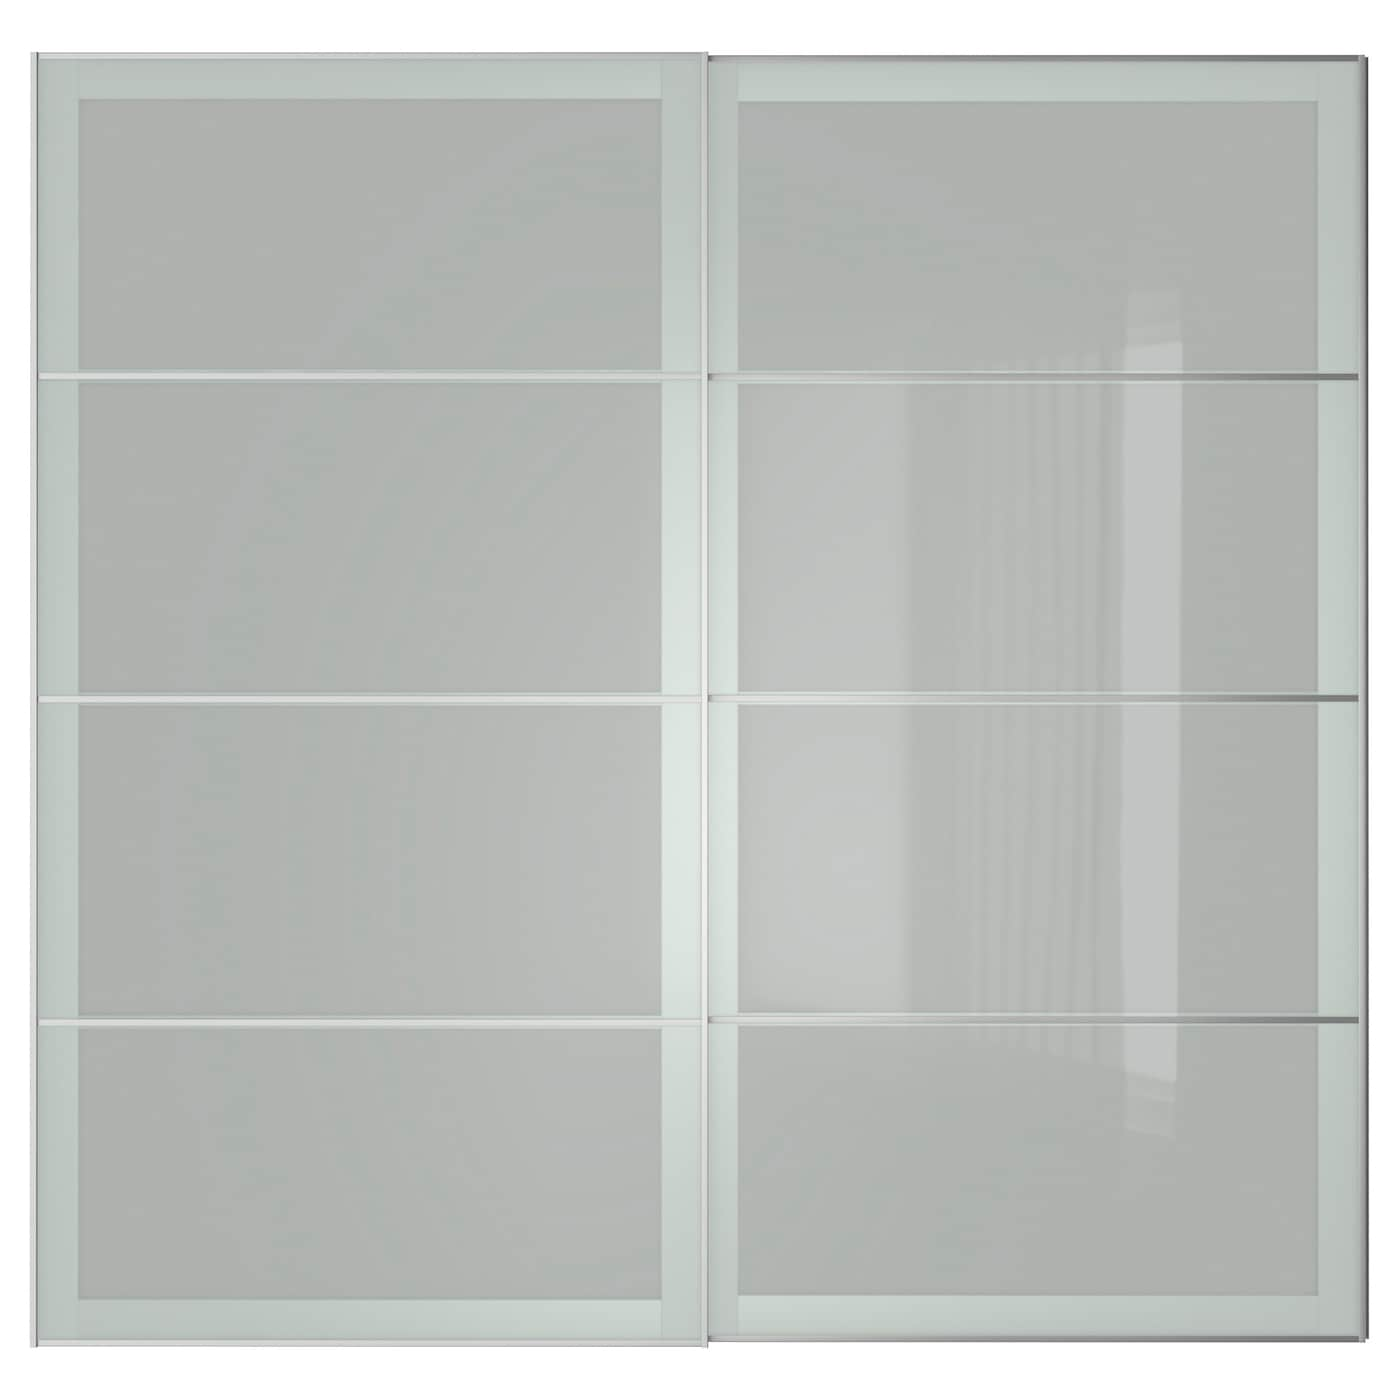 Sekken pair of sliding doors frosted glass 200x201 cm ikea for Frosted glass sliding doors